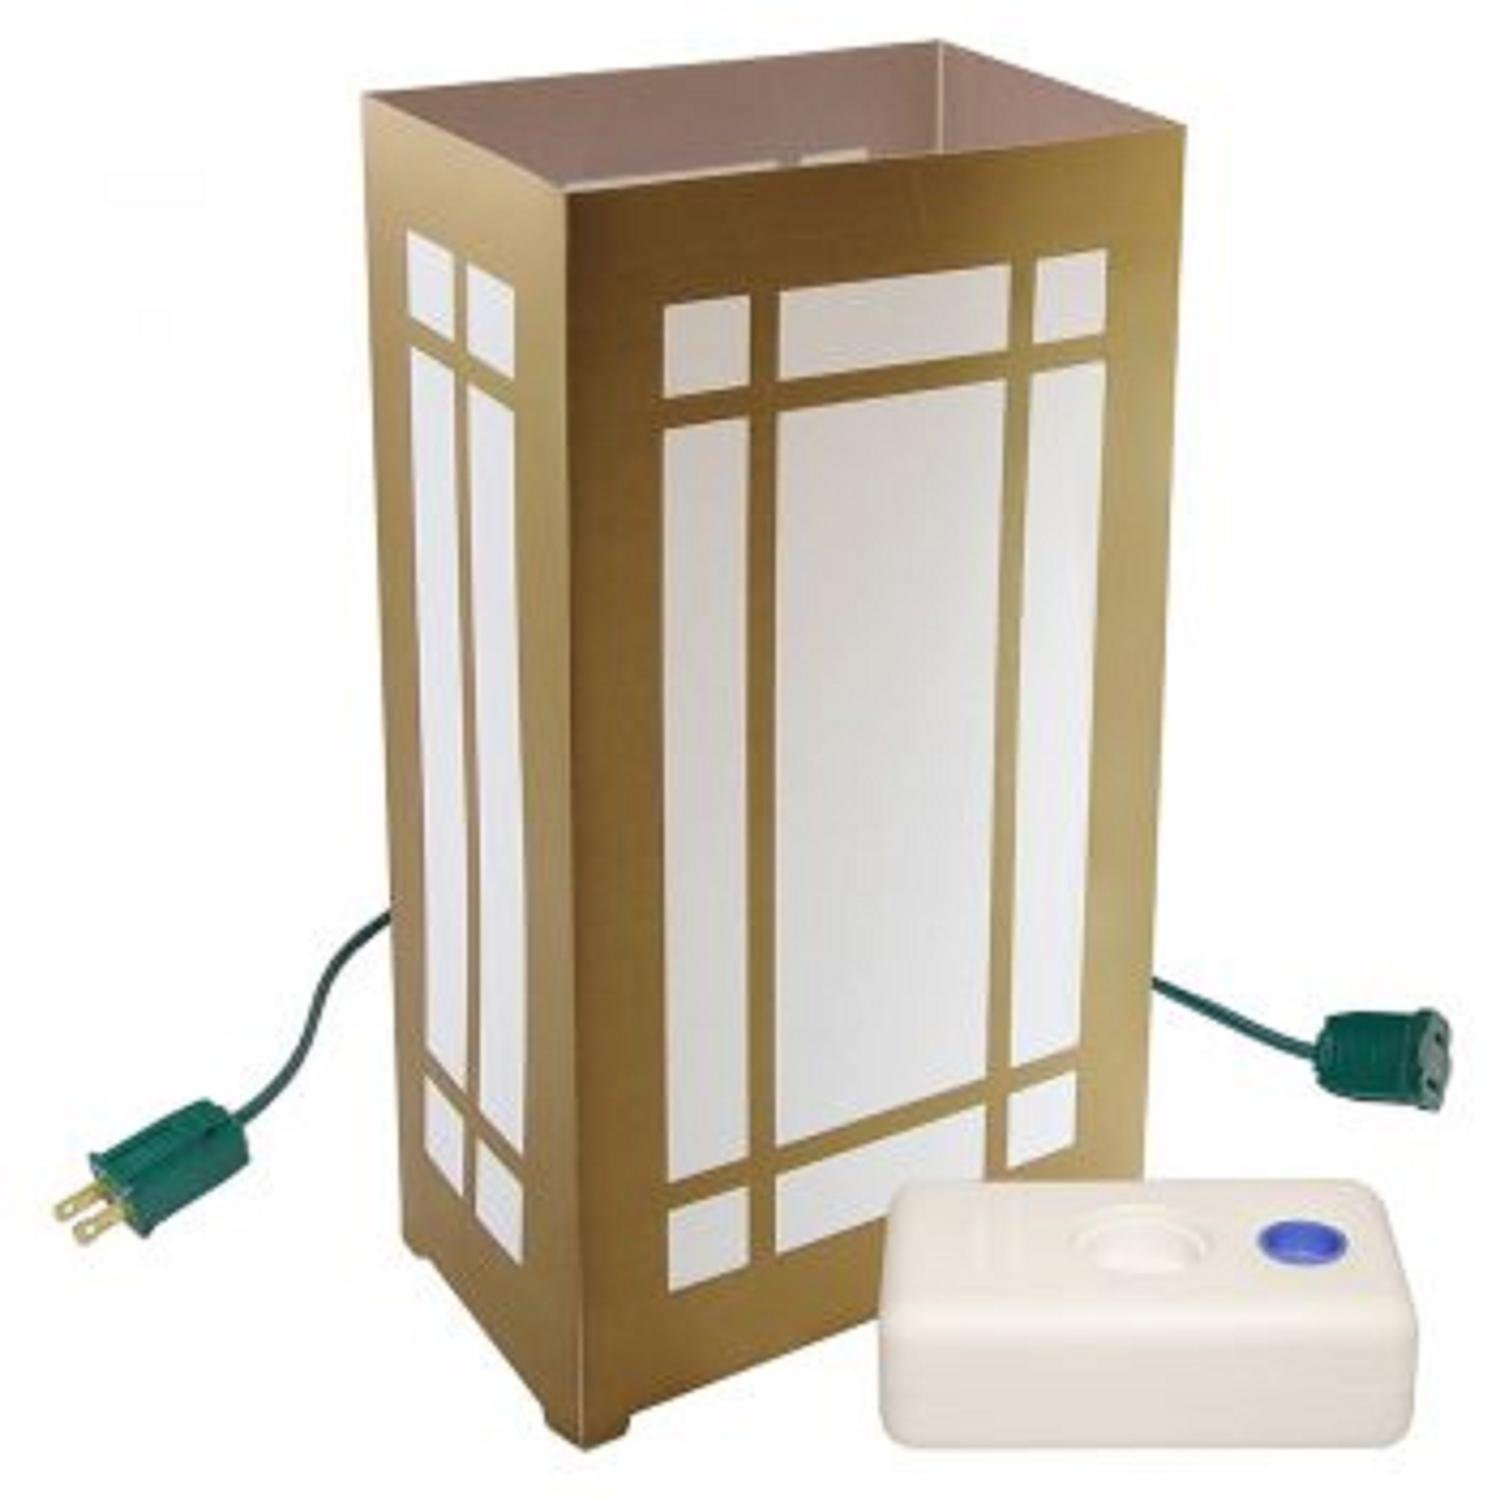 CC Home Furnishings Set of 10 Lighted Golden Lantern Luminaria Pathway Markers Kit with LumaBase